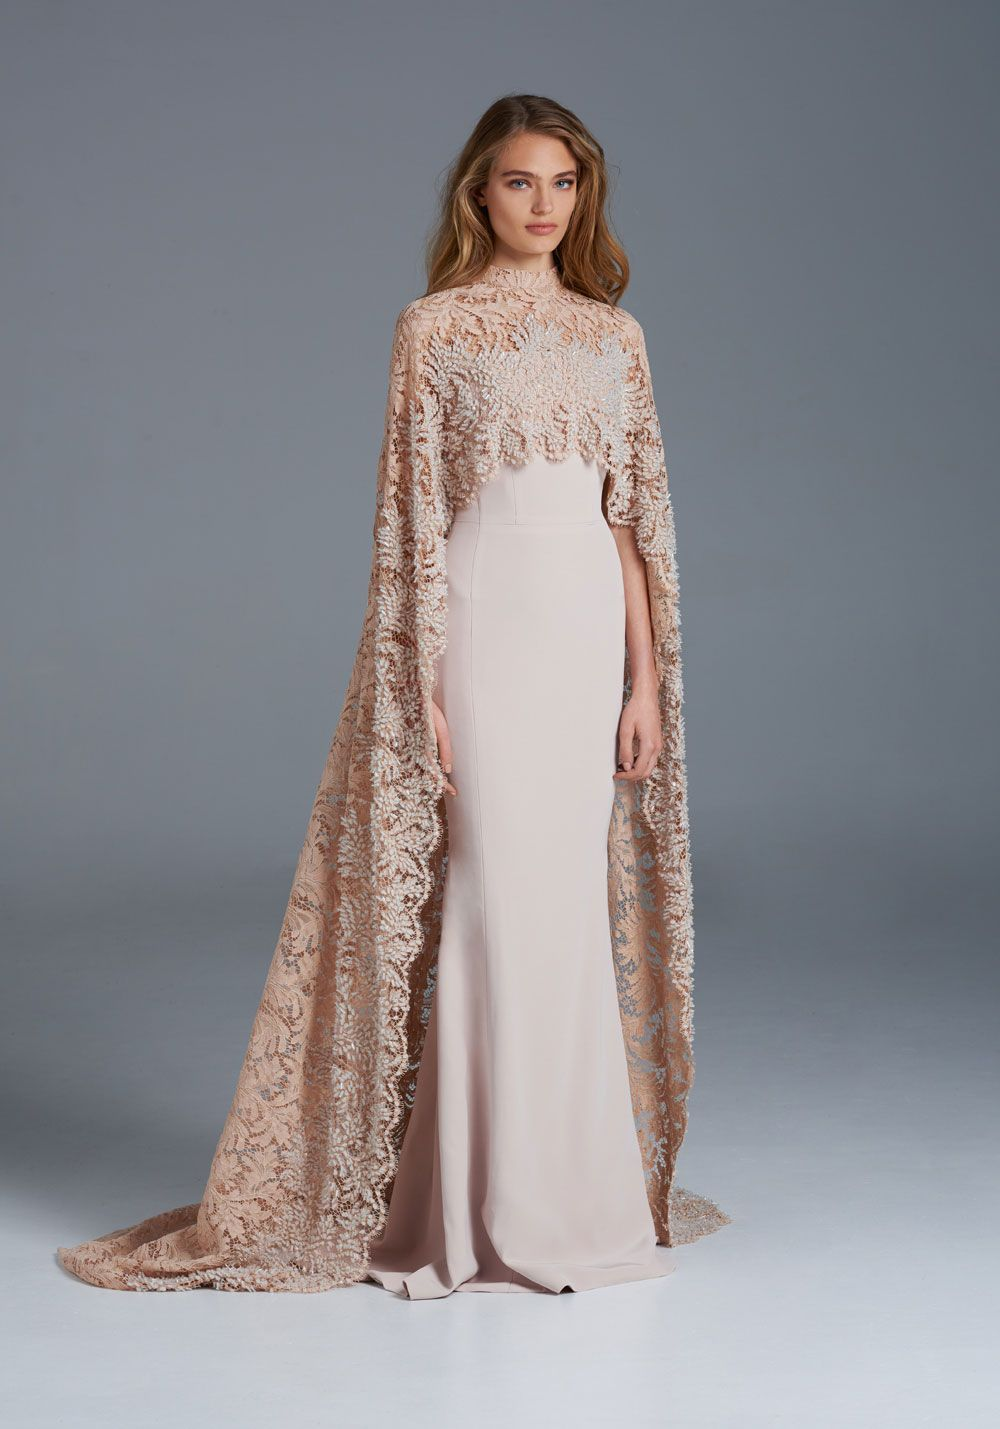 ss couture paolo sebastian beautiful cape gown glory